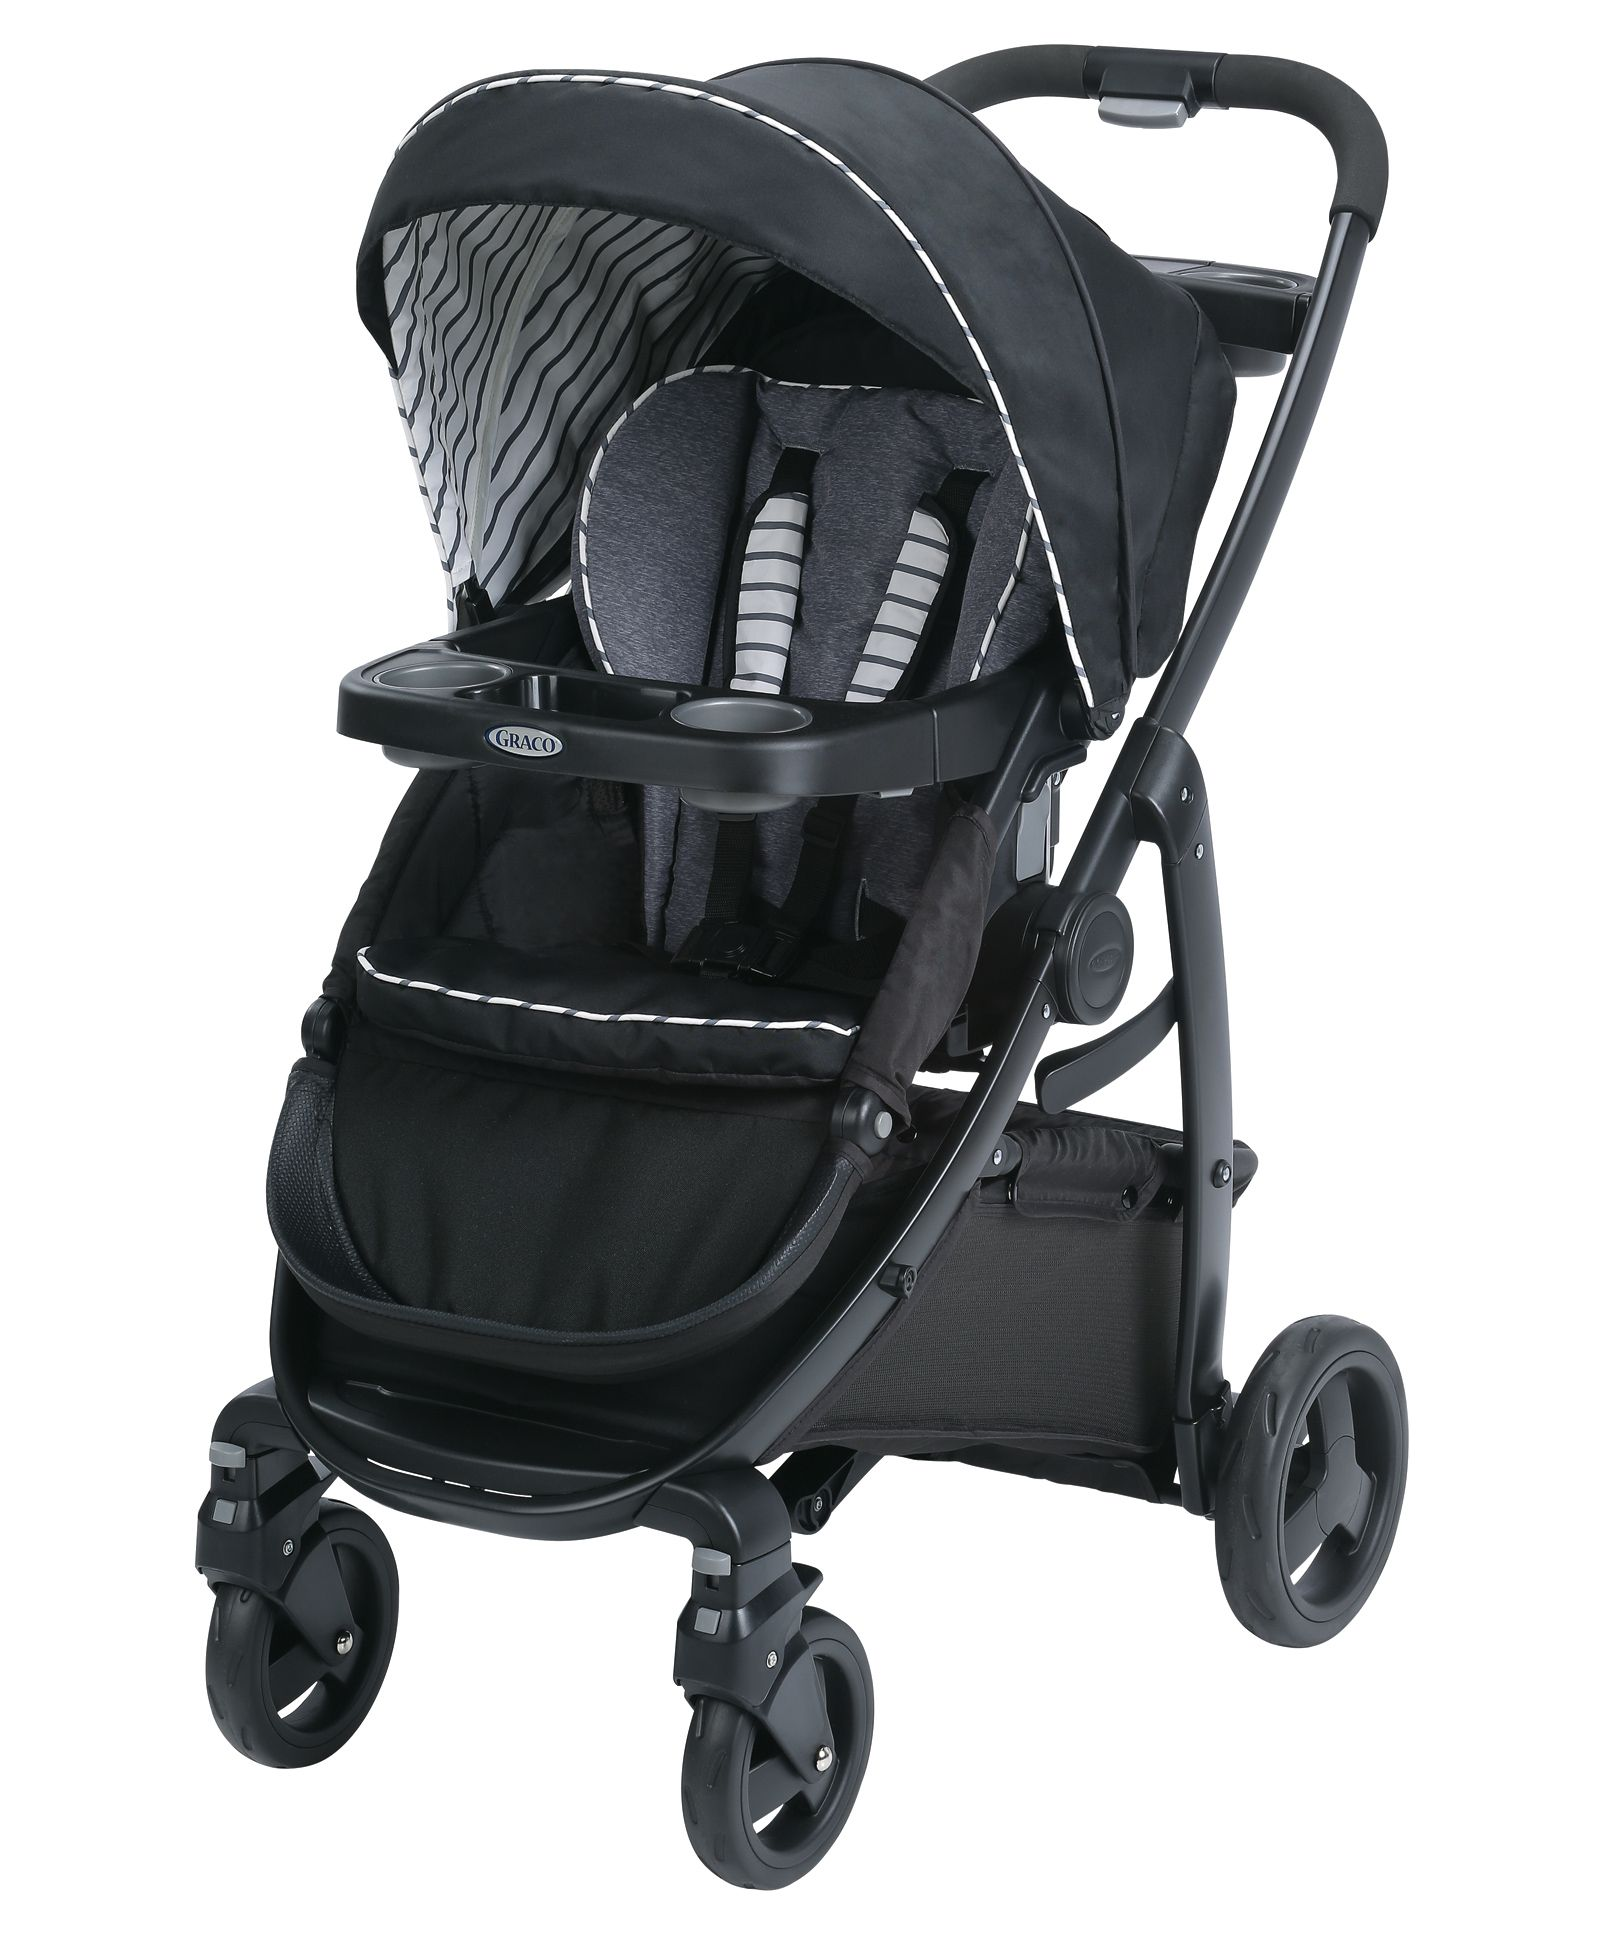 Graco Infant Car Seat Stroller Instructions Graco Modes Click Connect Stroller Black Online In India